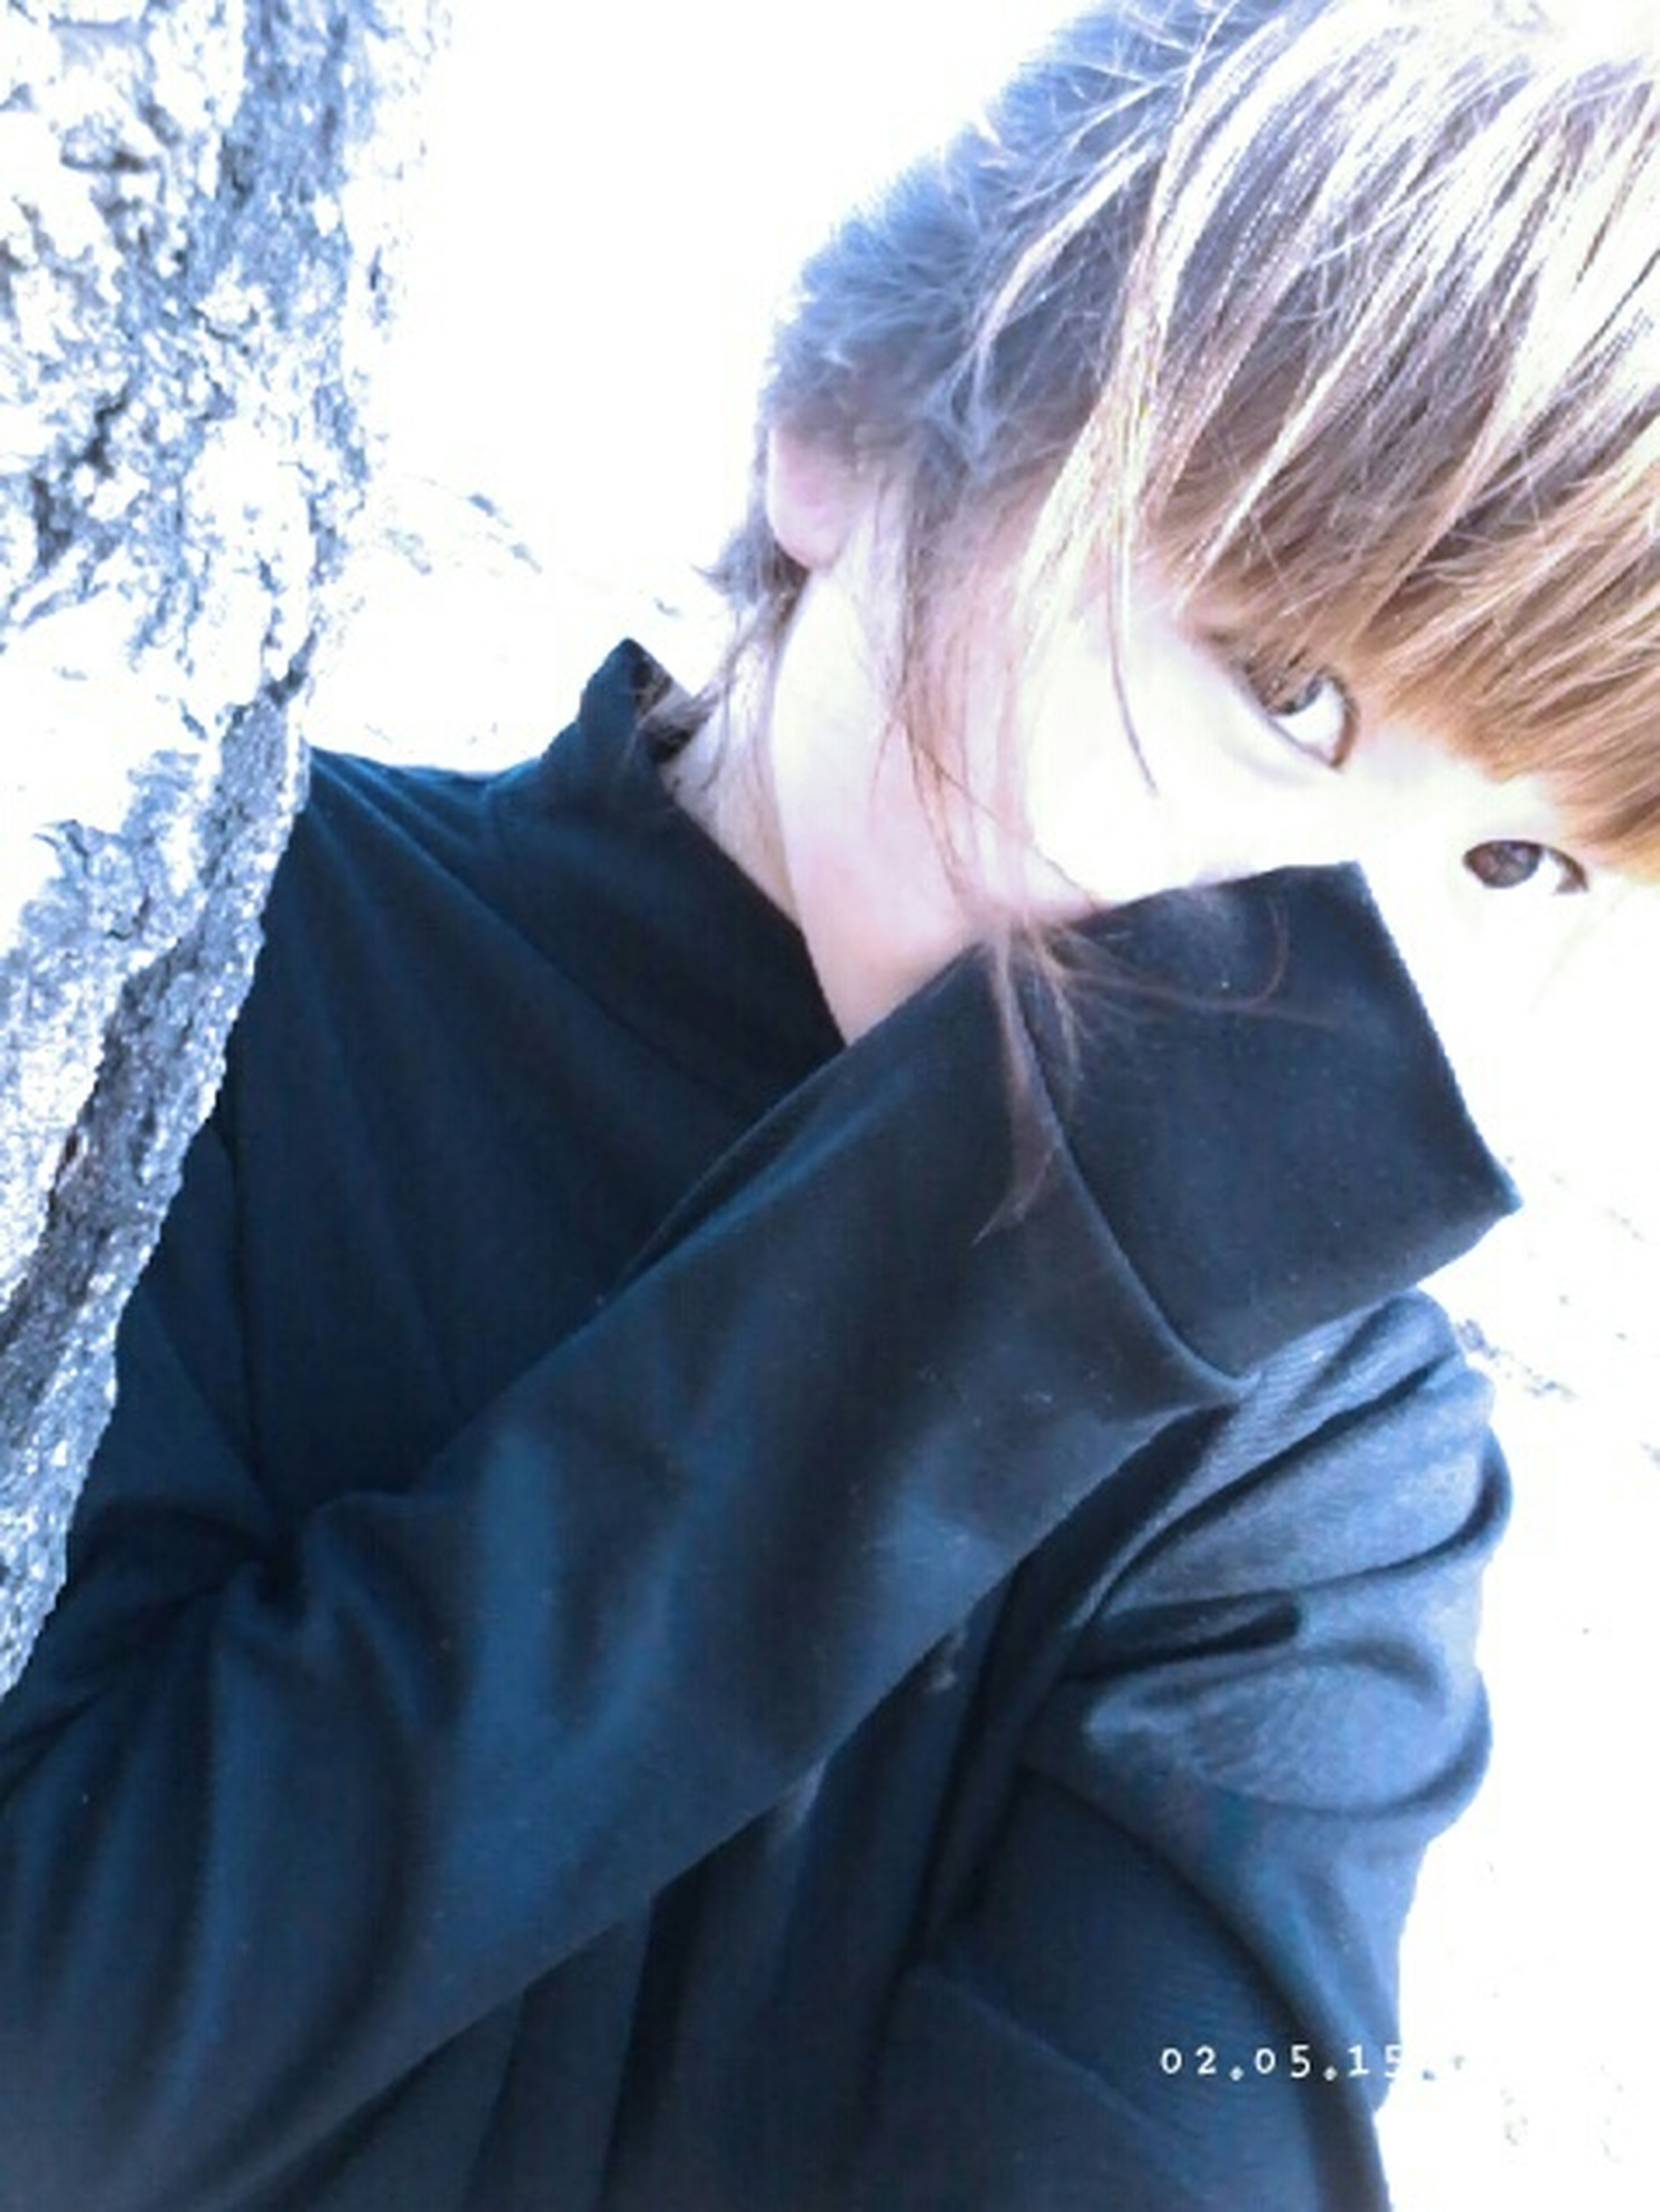 lifestyles, casual clothing, leisure activity, young adult, headshot, person, young women, waist up, warm clothing, long hair, rear view, winter, front view, sitting, day, jacket, looking down, side view